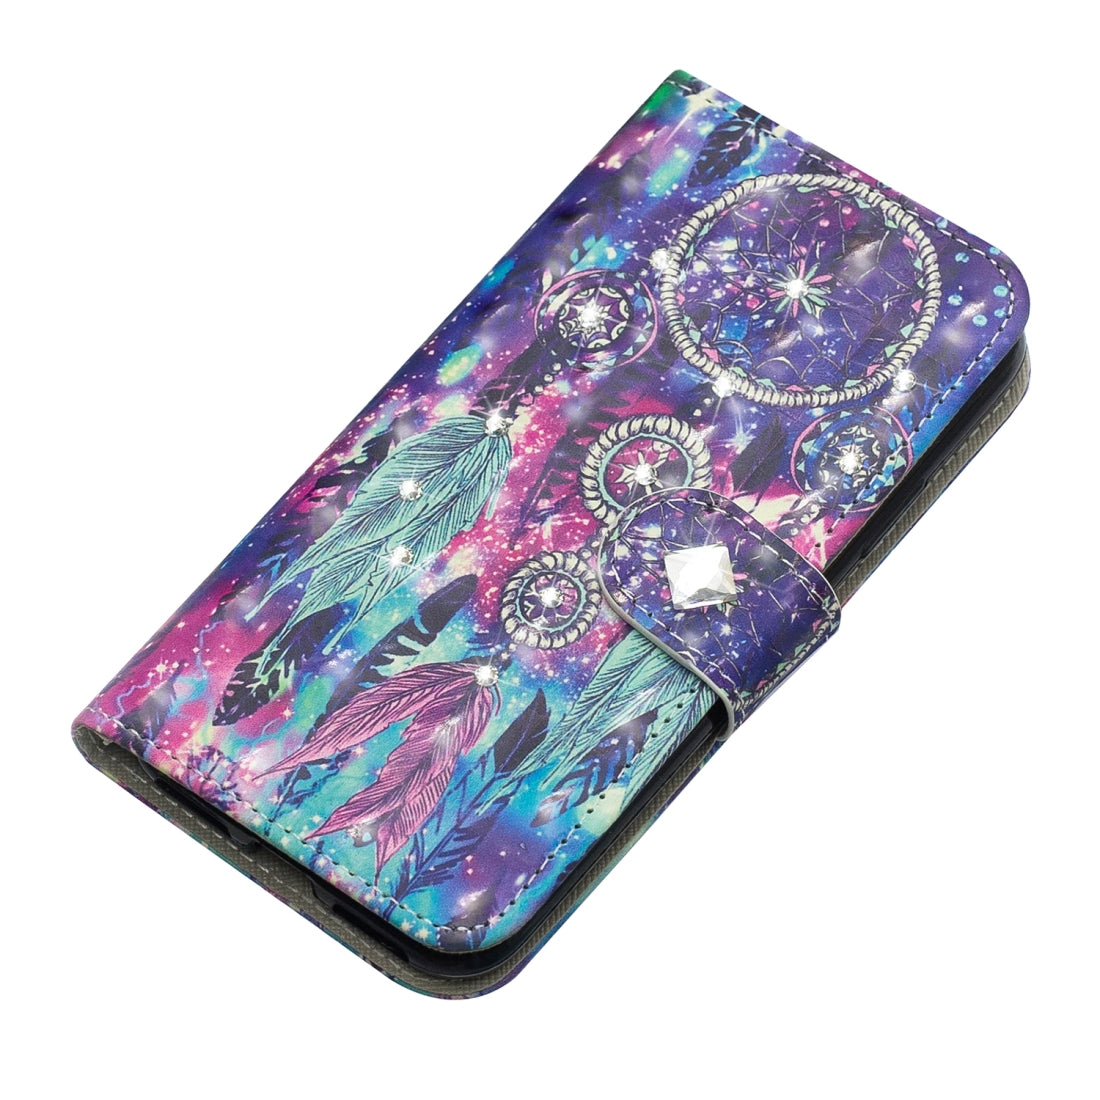 \Sony Xperia X1 3D Diamond Encrusted Painting Pattern Coloured Drawing Horizontal Flip PU Leather Case